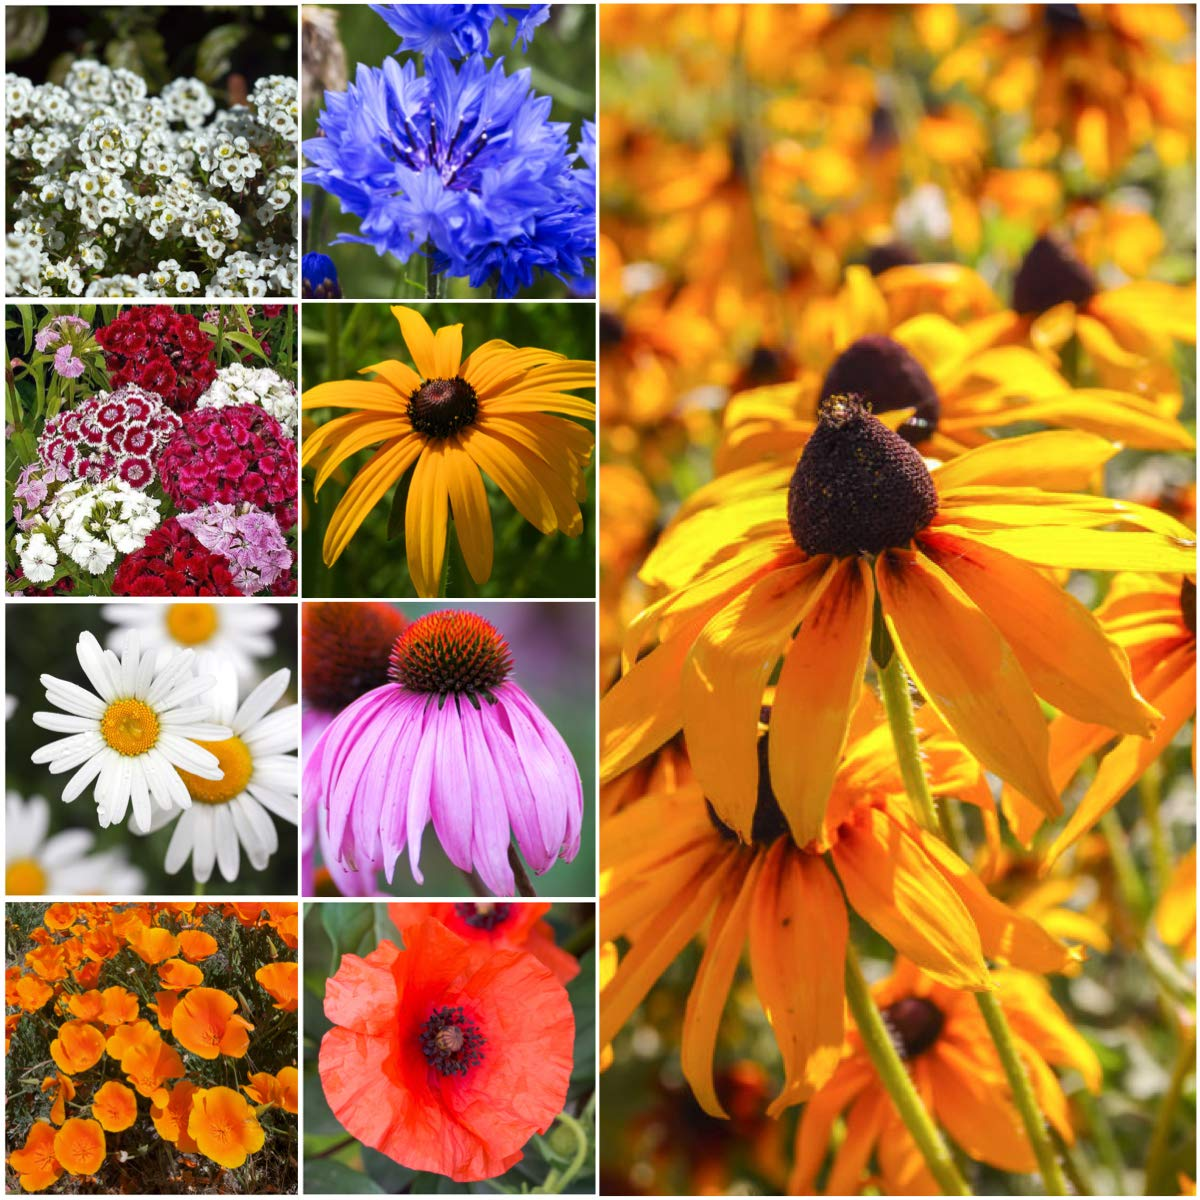 Seed Needs, Dryland Wildflower Mixture (20 Species) 30,000 Seeds Fresh & Untreated